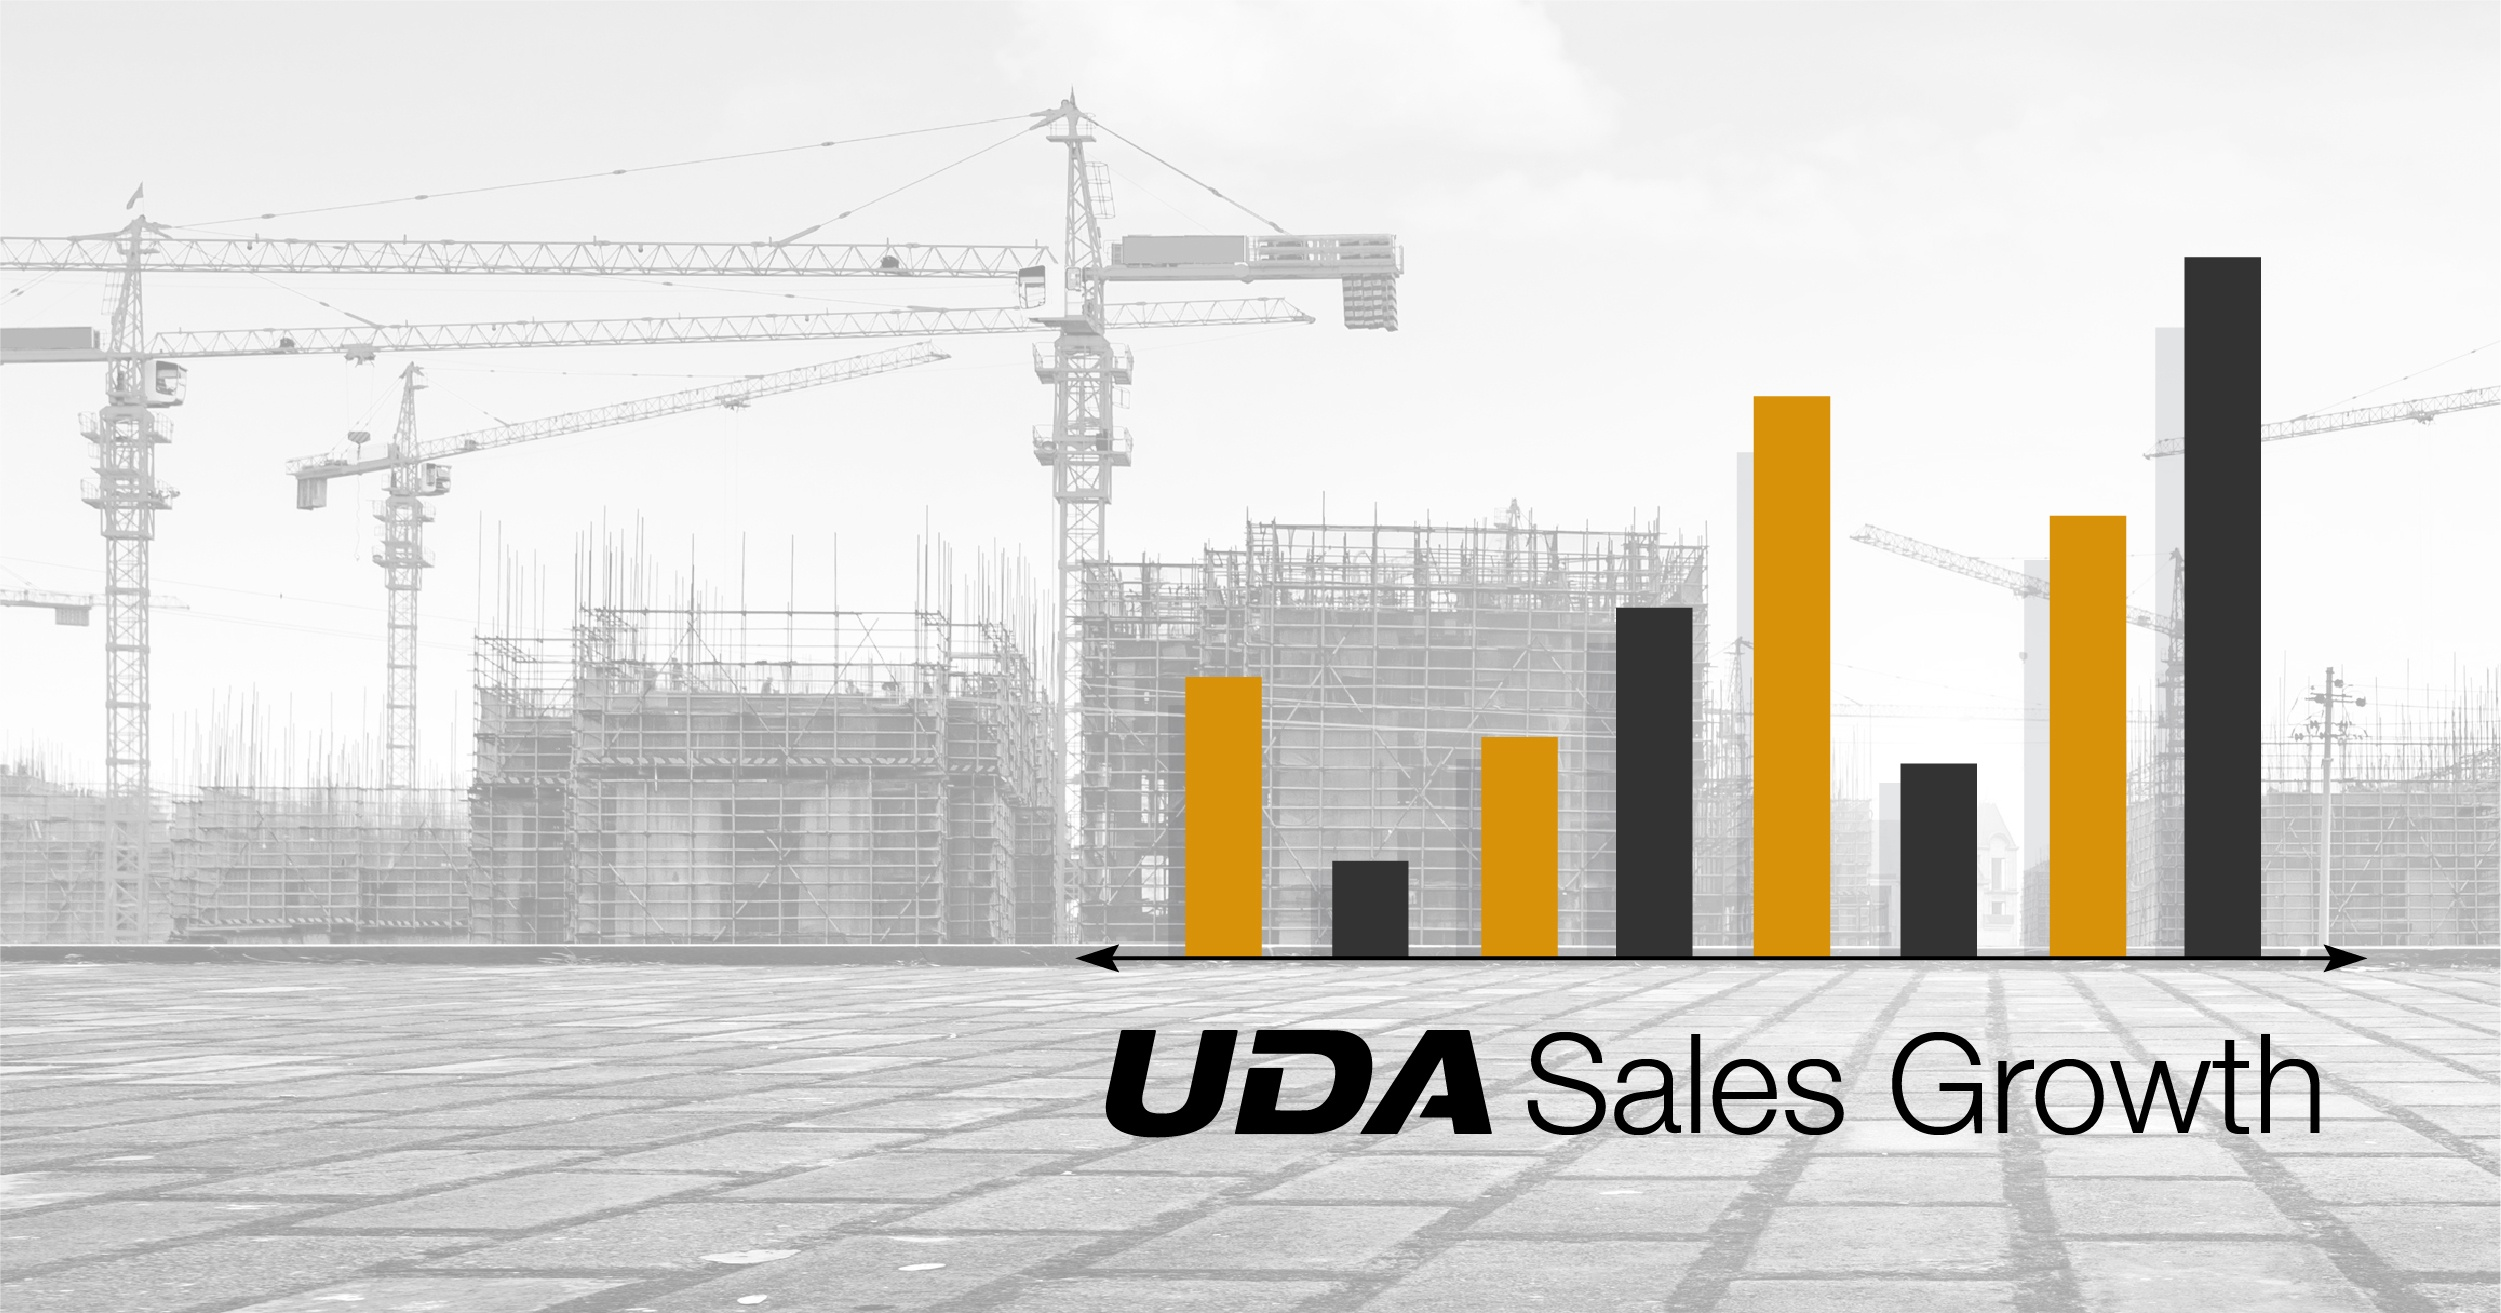 UDA Starts 2018 with Record-Setting Sales